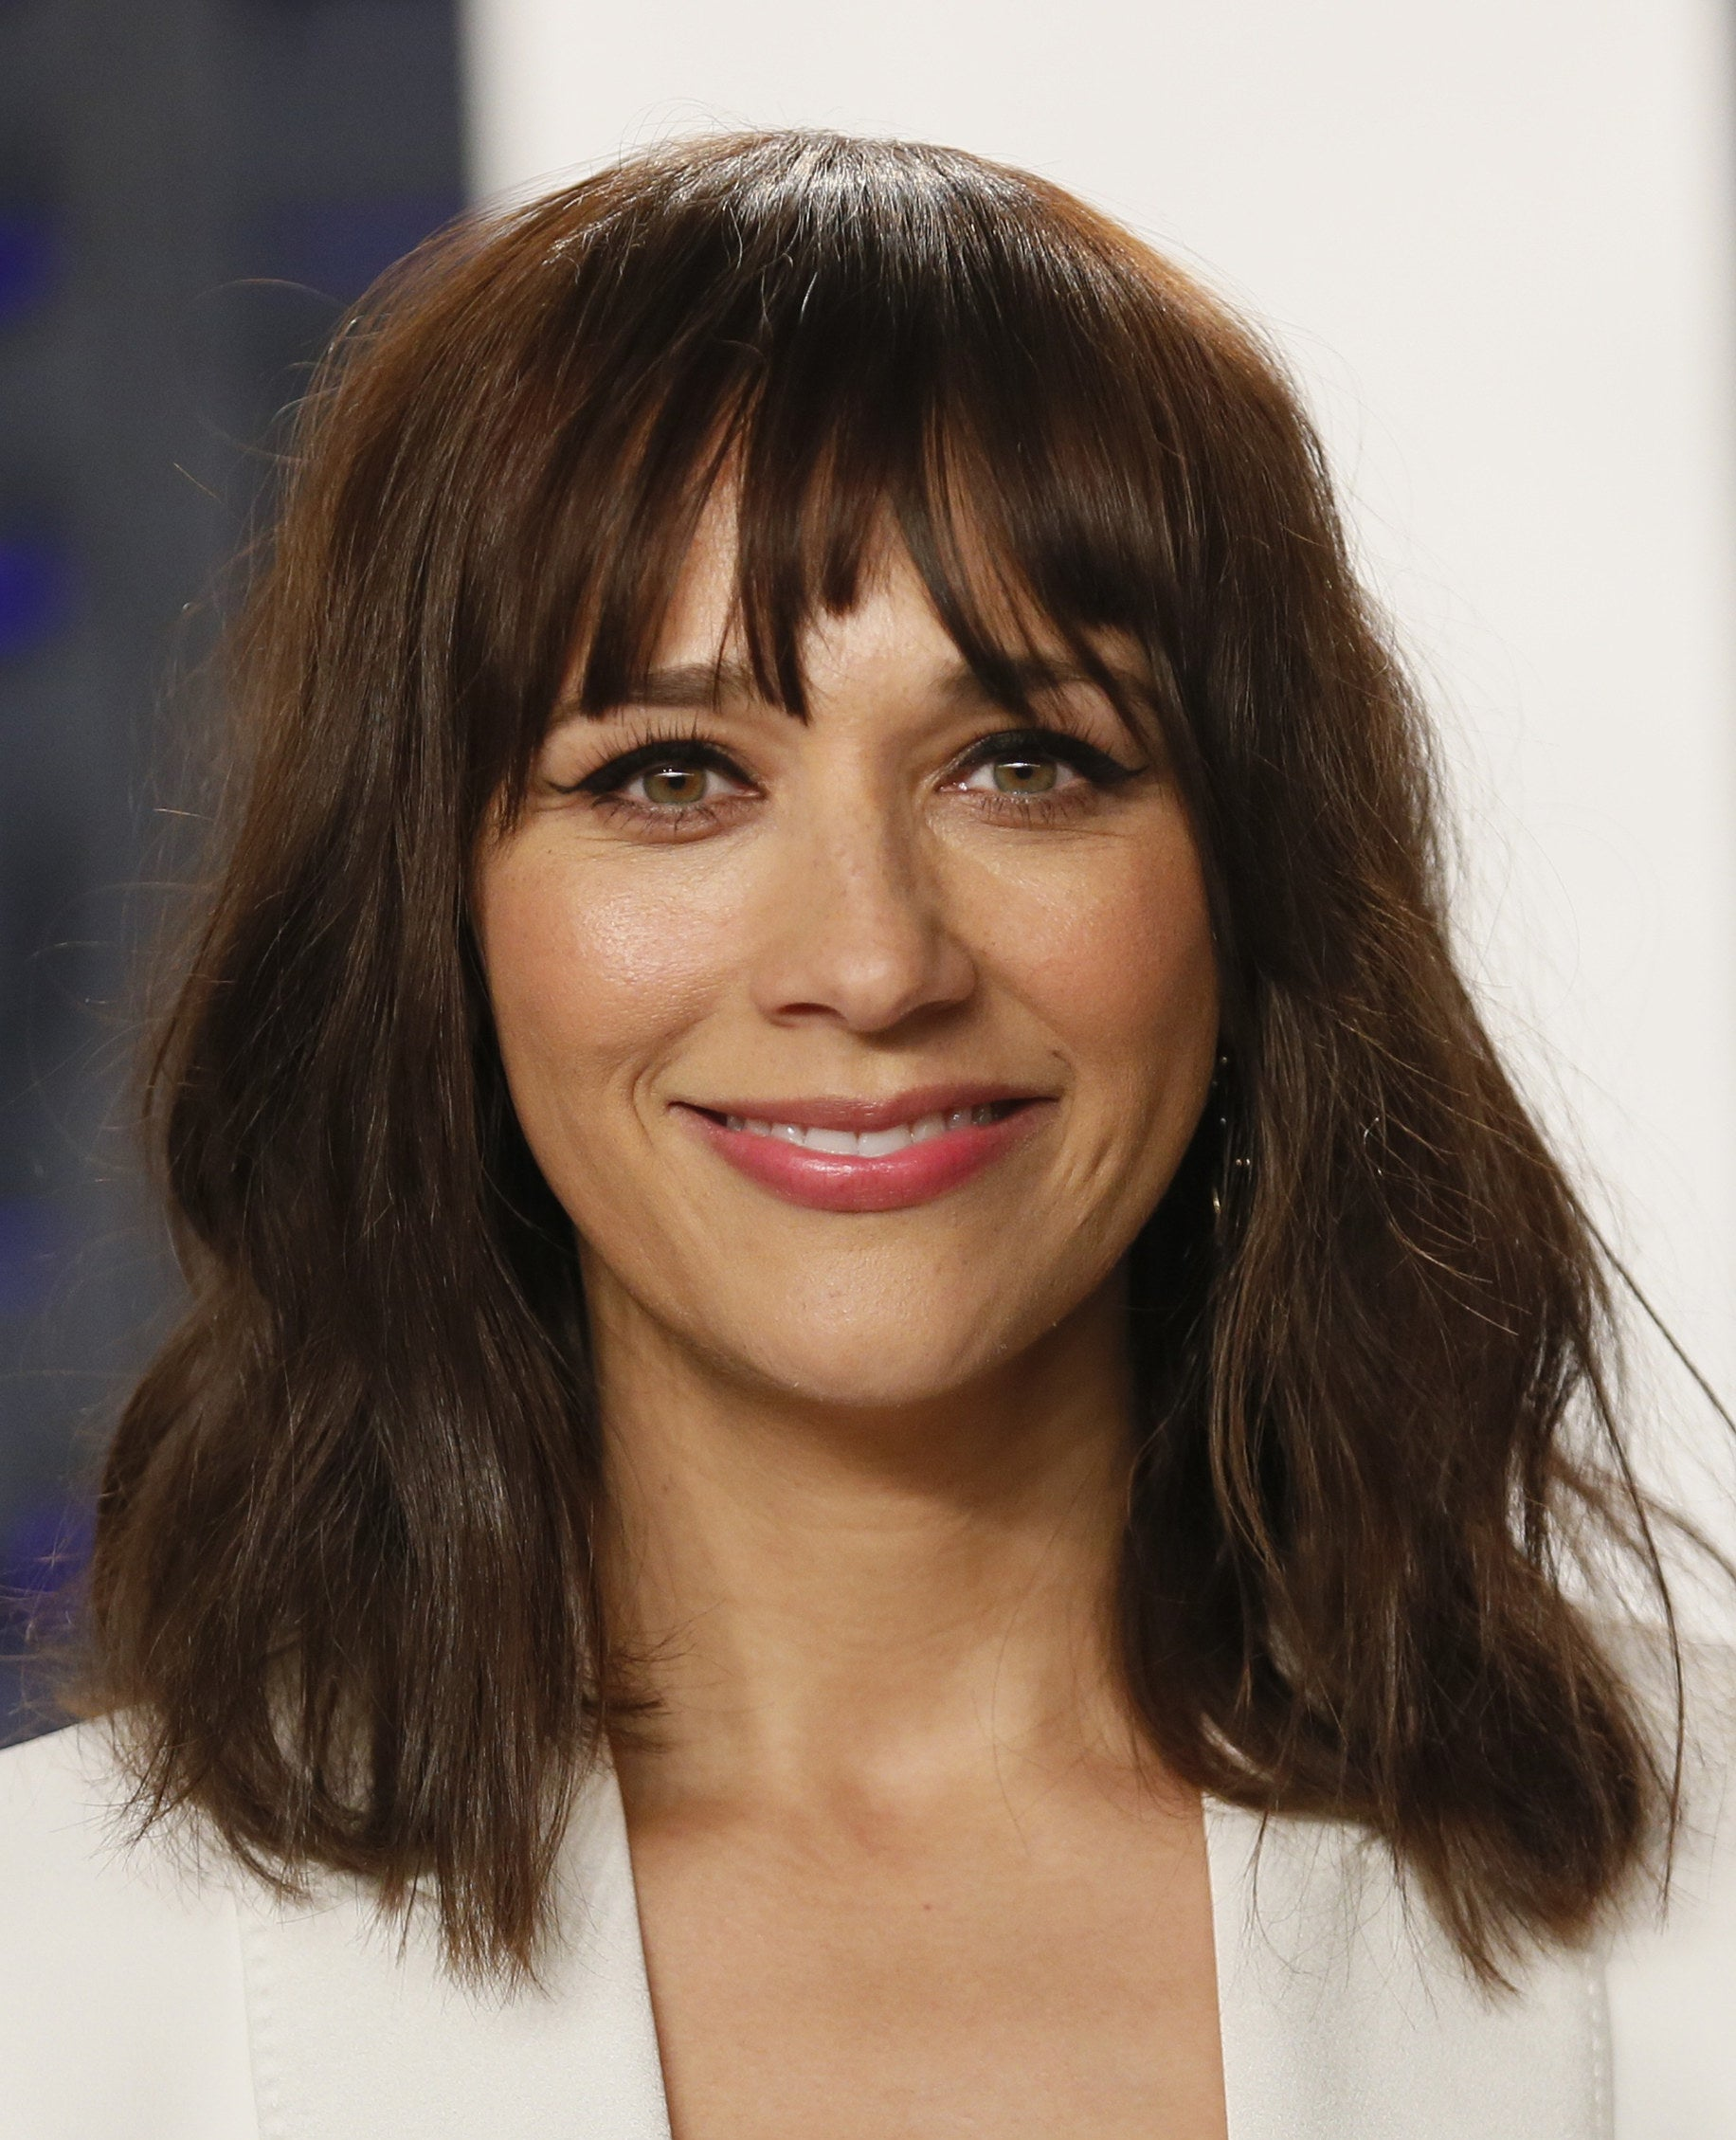 Rashida Jones with short wavy hair and bangs, smiling into the camera and wearing a blazer